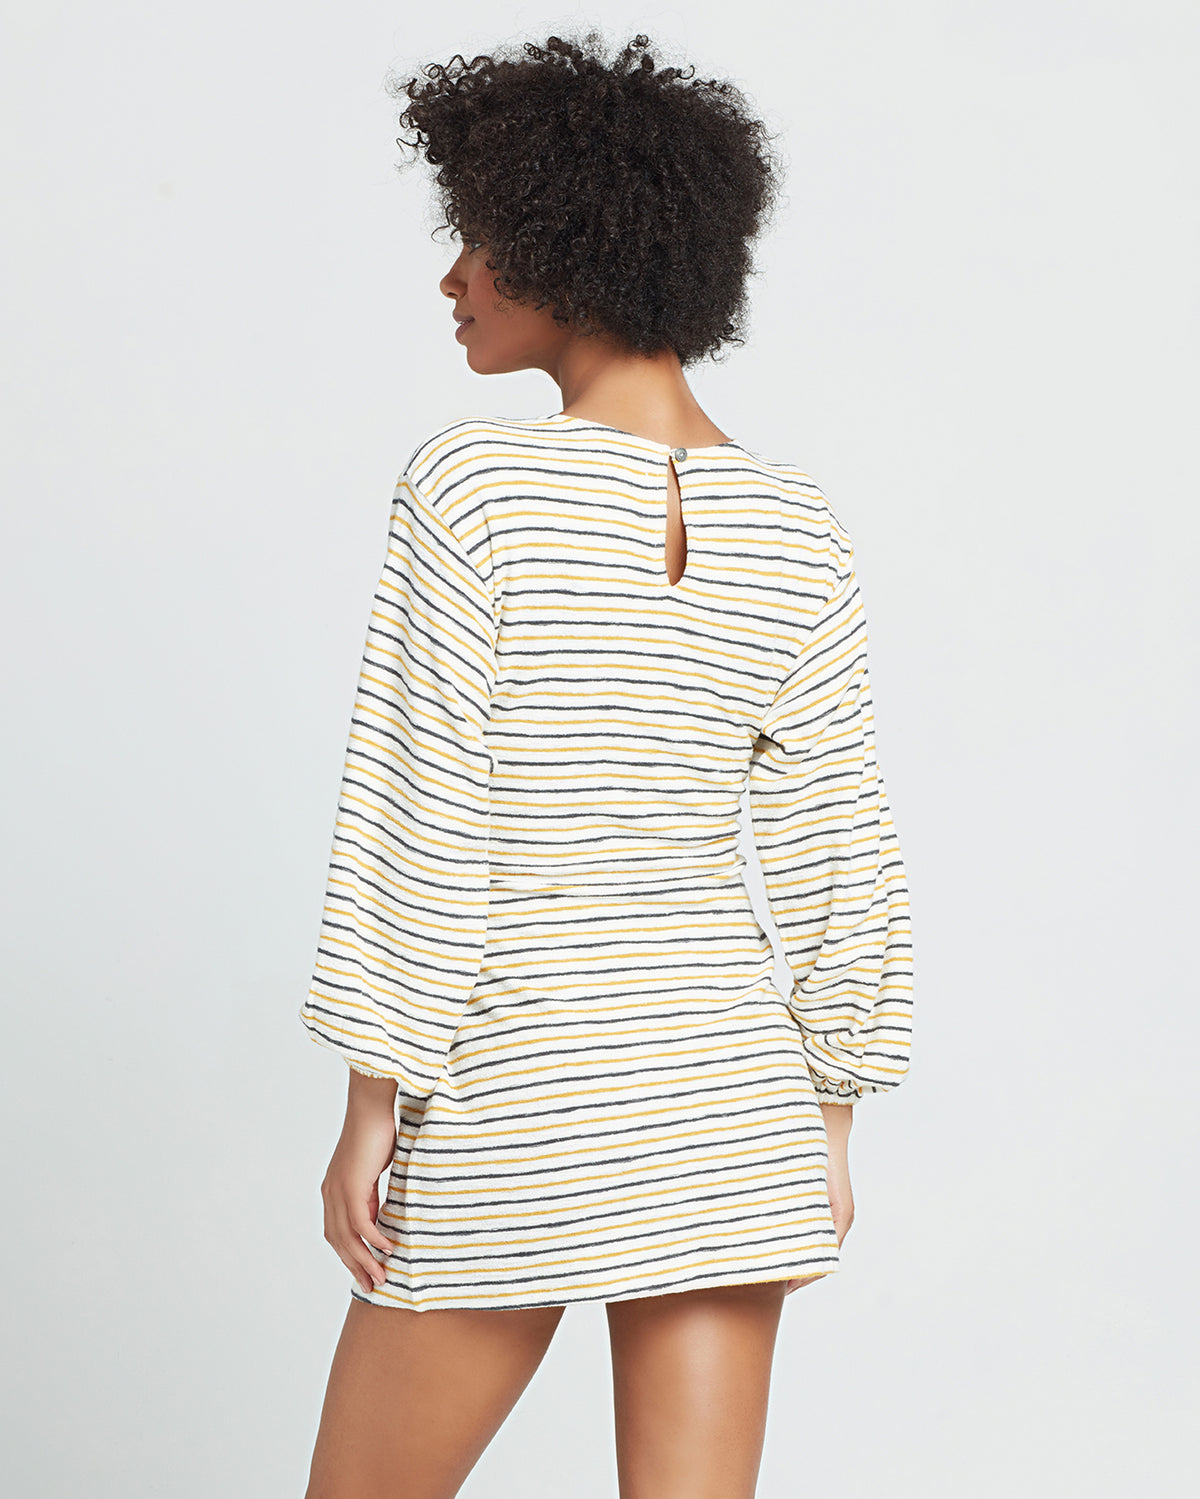 Surf's Up Stripe | Model: Valyn (size: S)